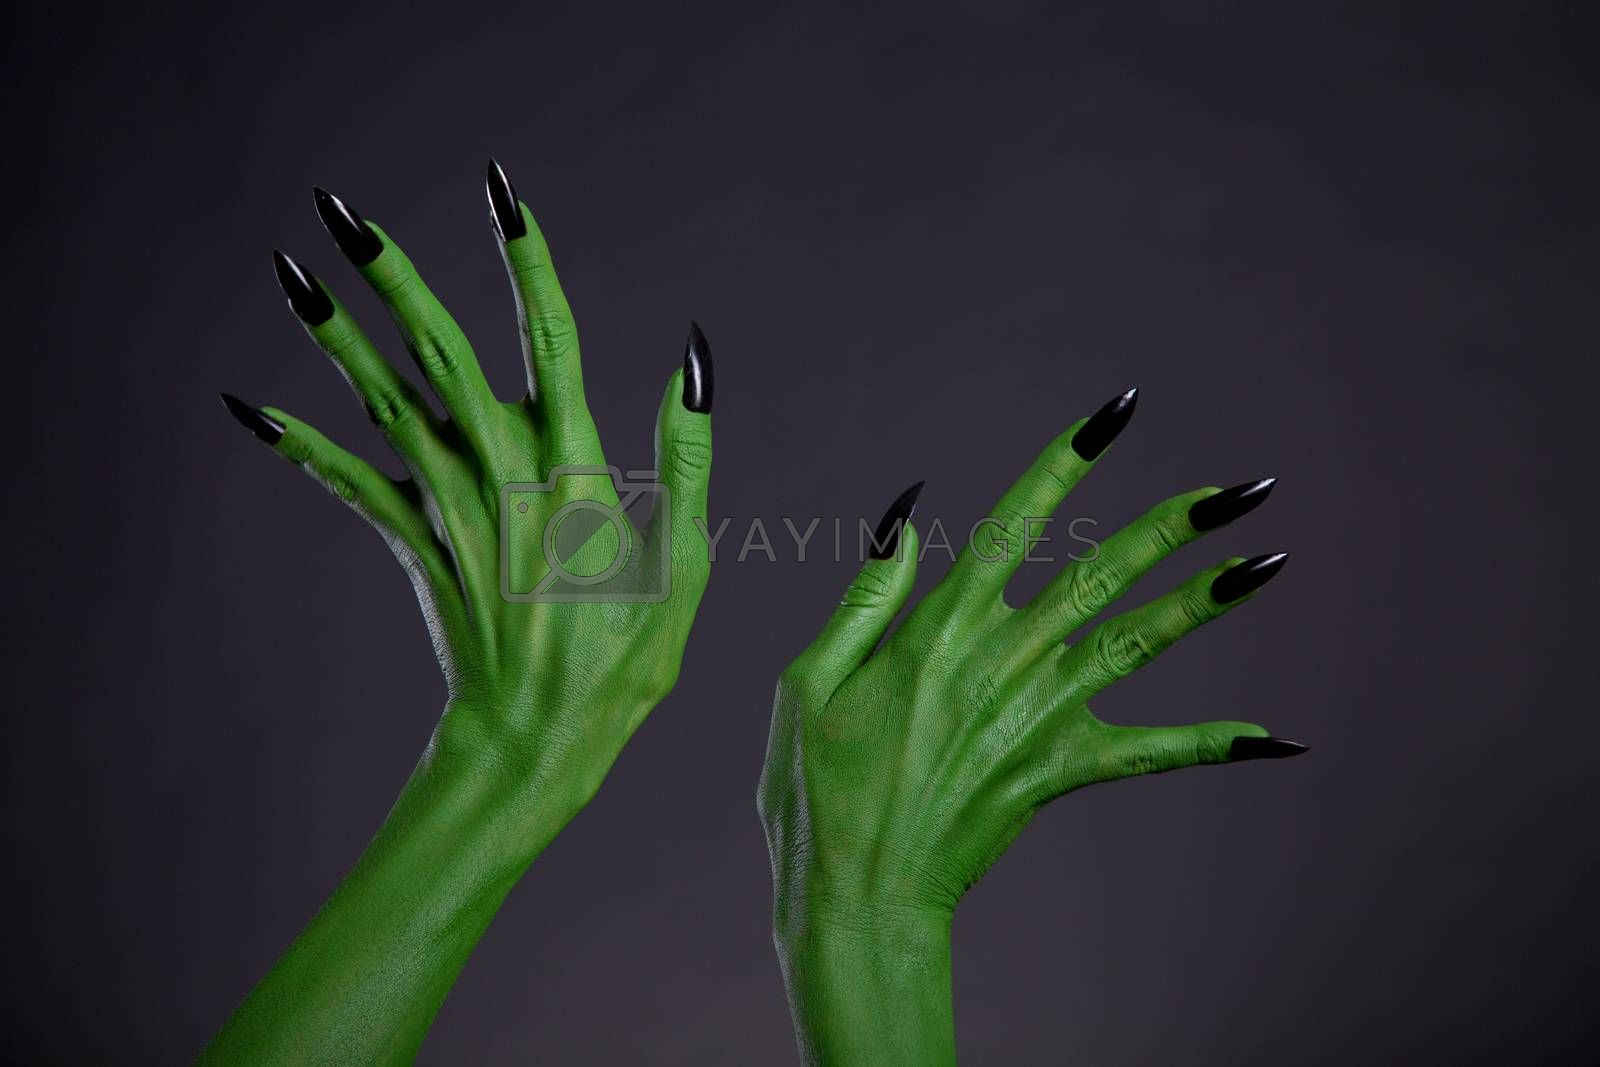 Green monster hands with black nails, Halloween theme, studio shot on black background